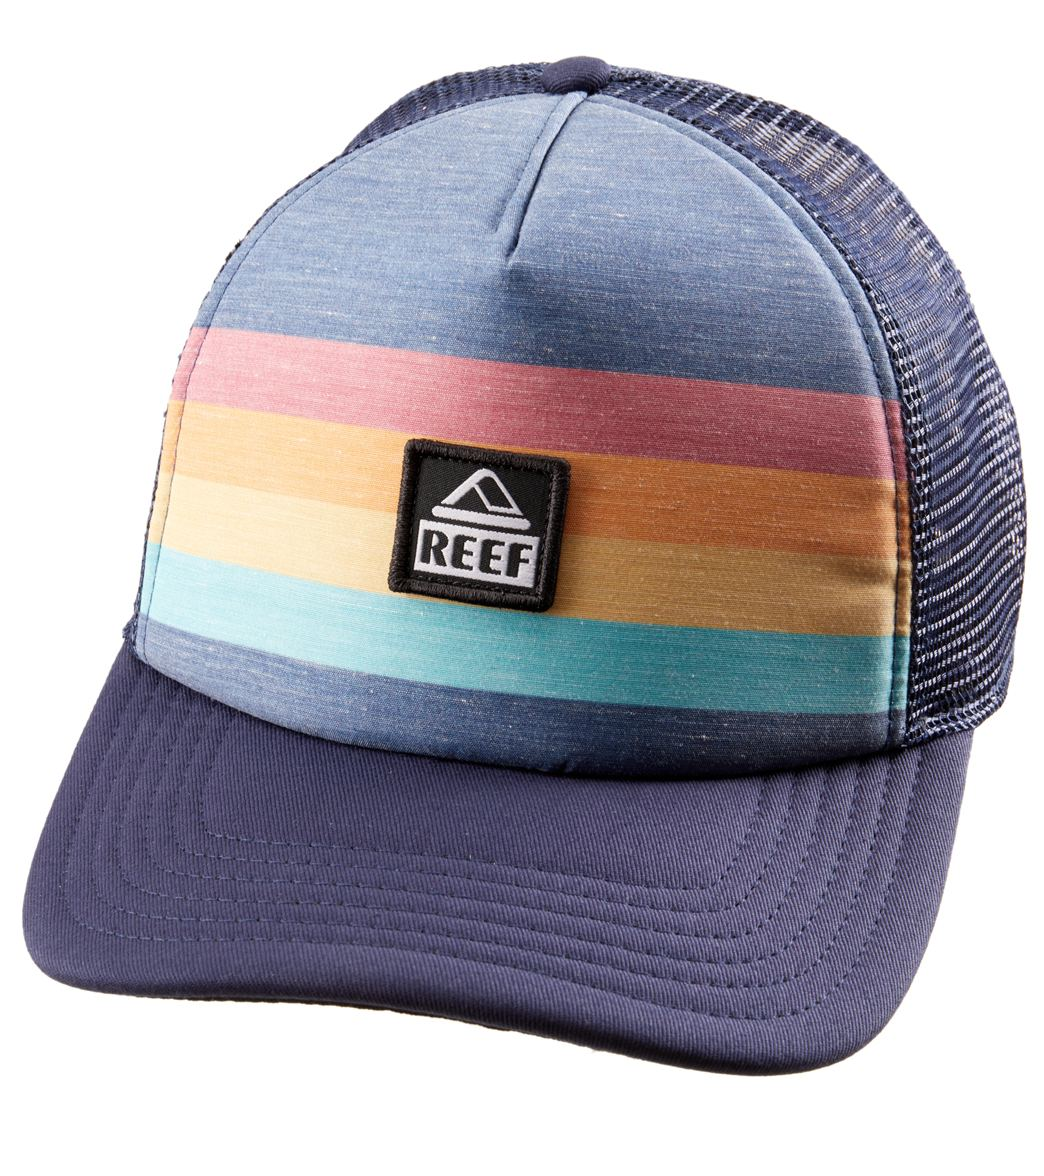 Reef Men s Simple Hat at SwimOutlet.com f6f824e20959